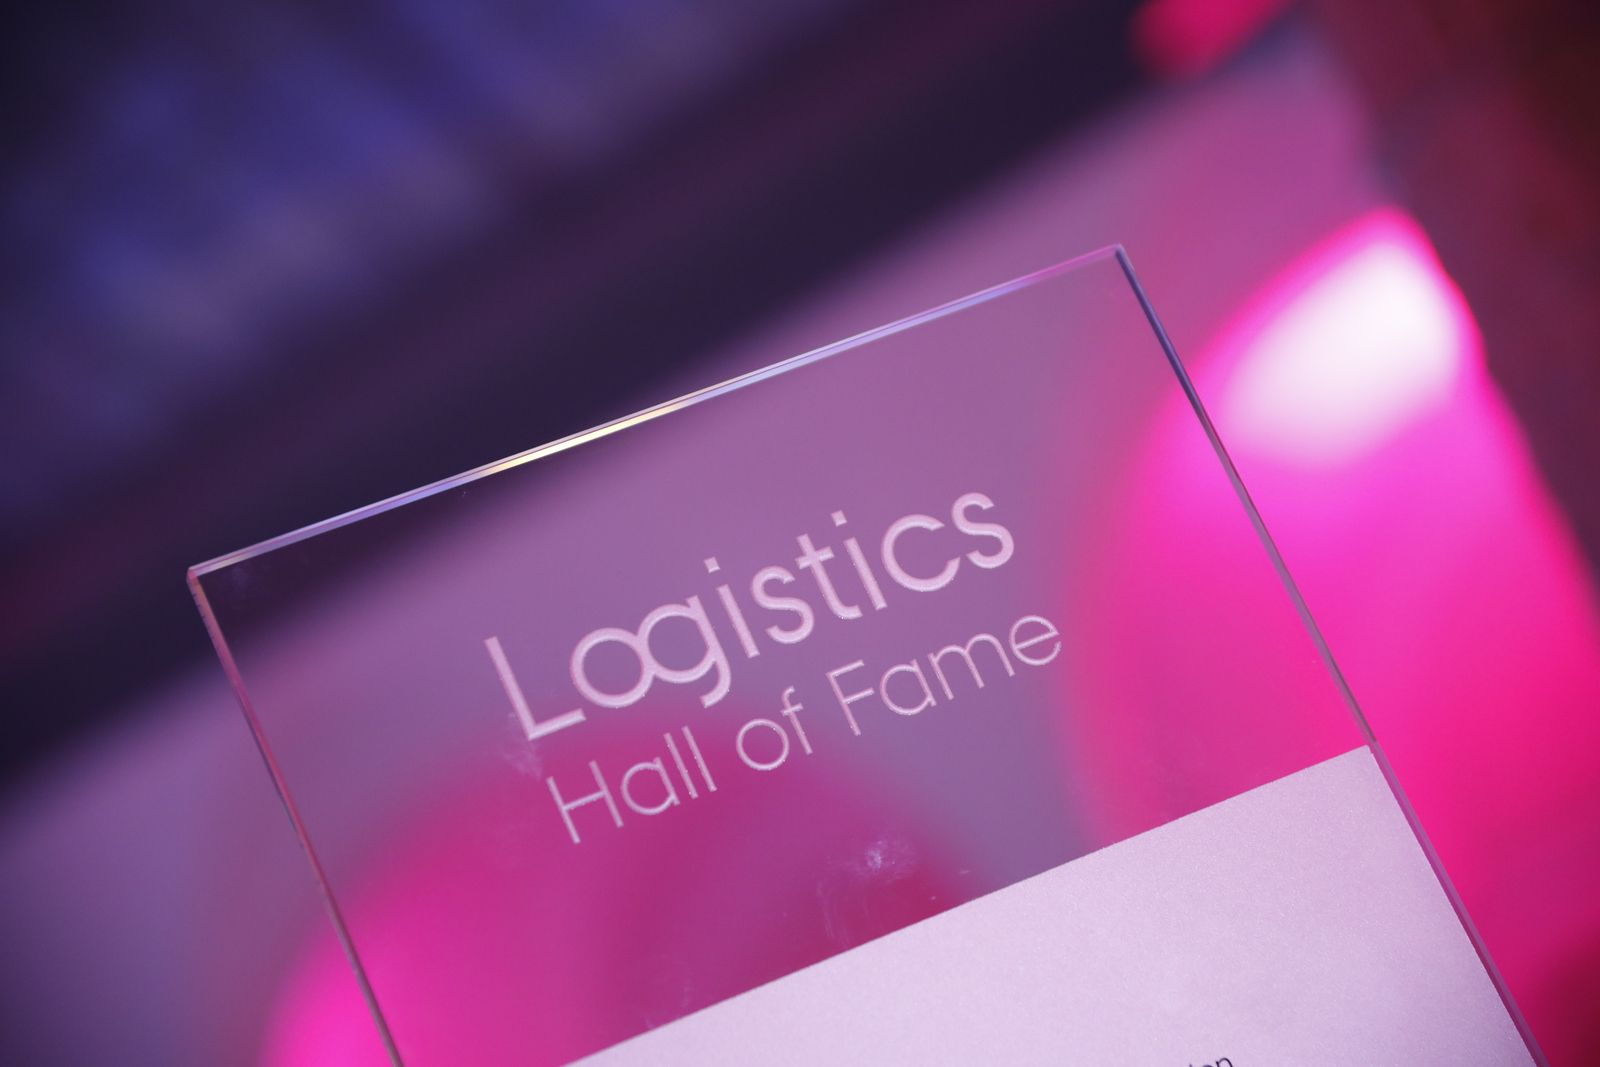 Logistics Hall of Fame starts with a new proposal phase